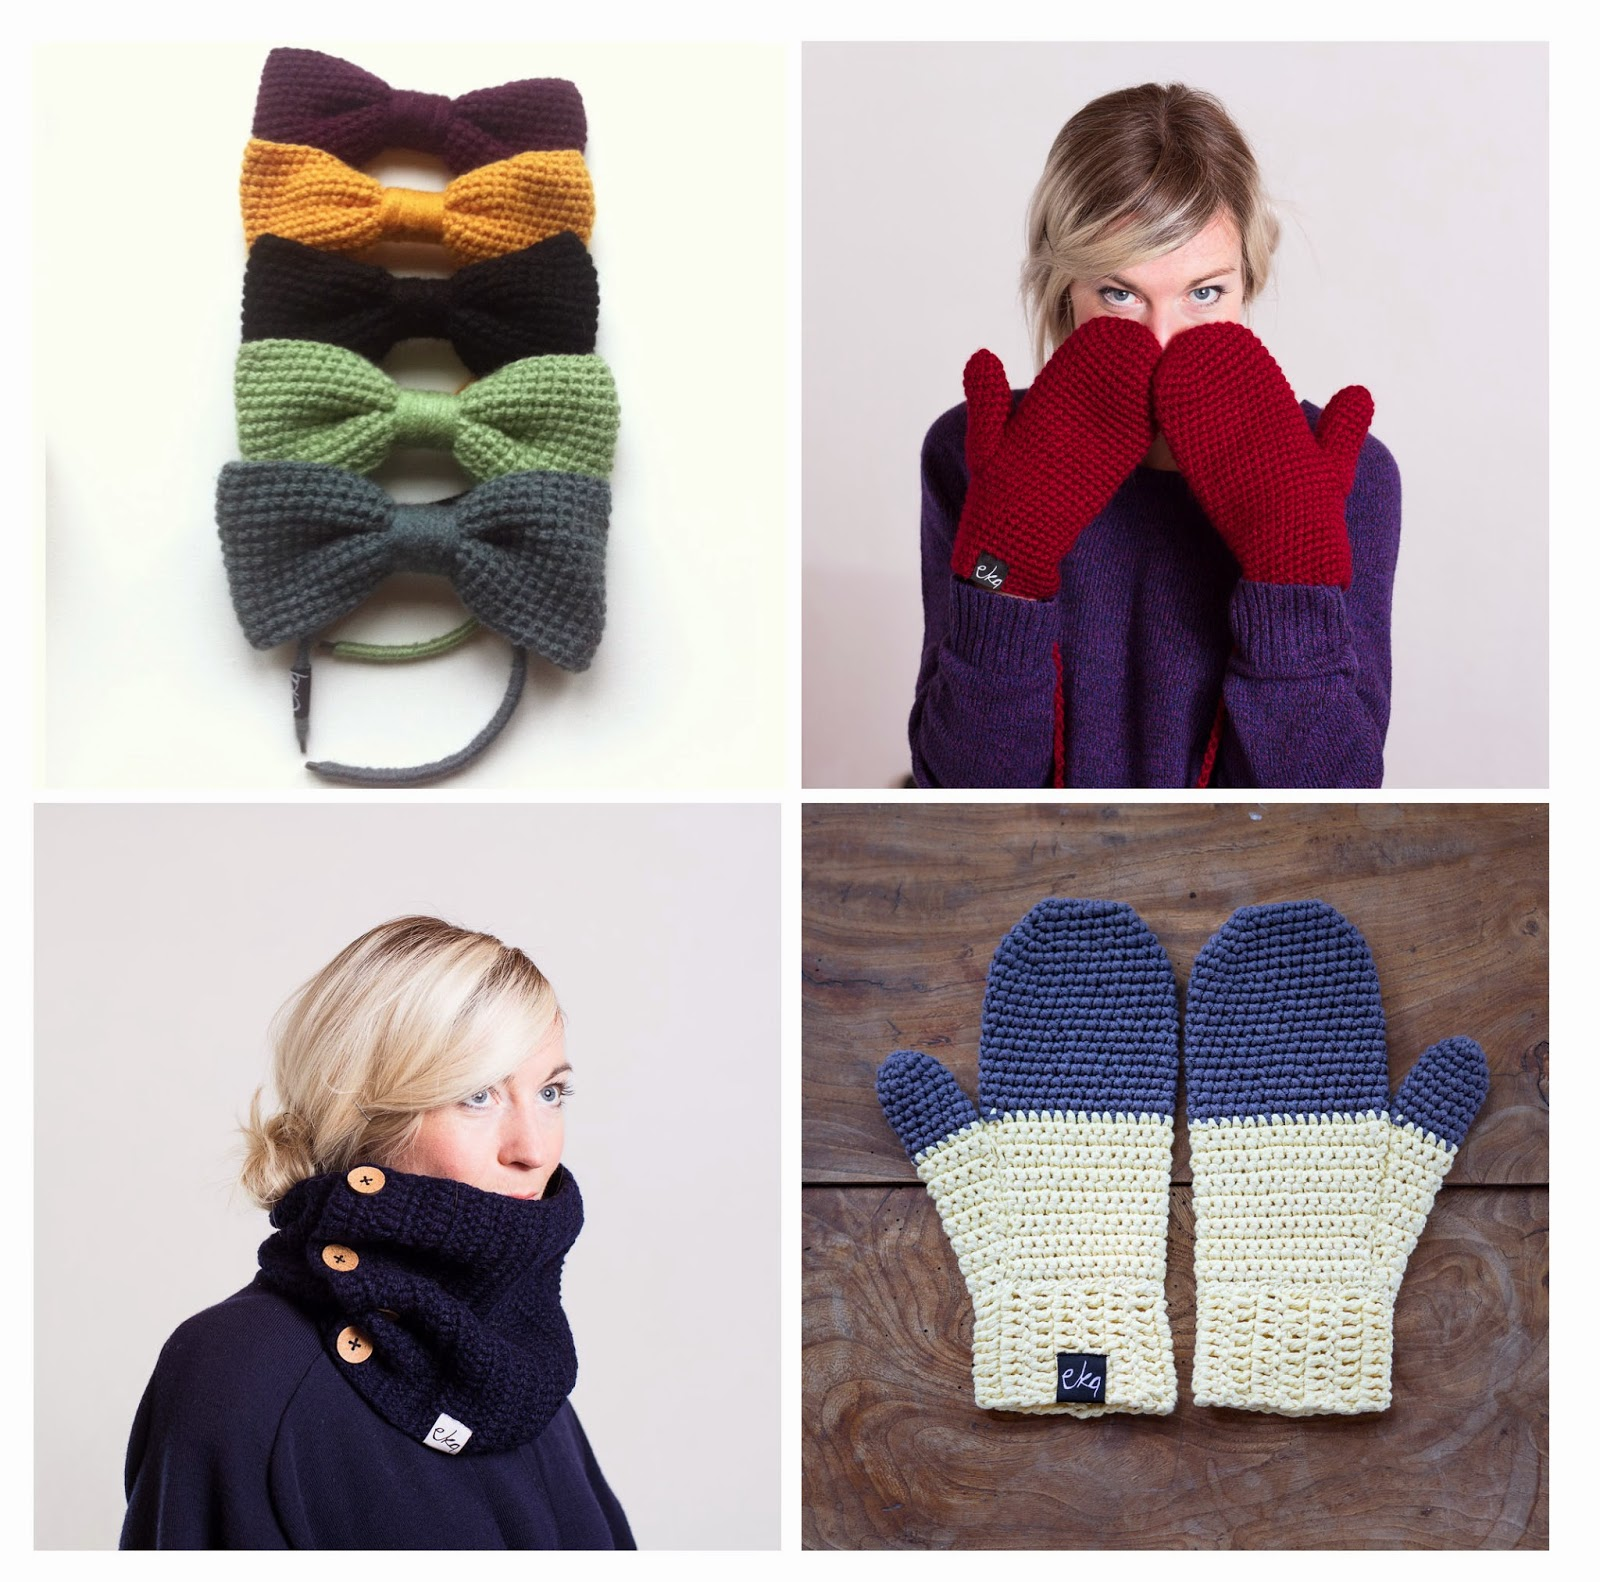 Ma Bicyclette - Buy Handmade - Clothing For Women - EKA - Knitted Mittens Hair Bow Snood Scarf